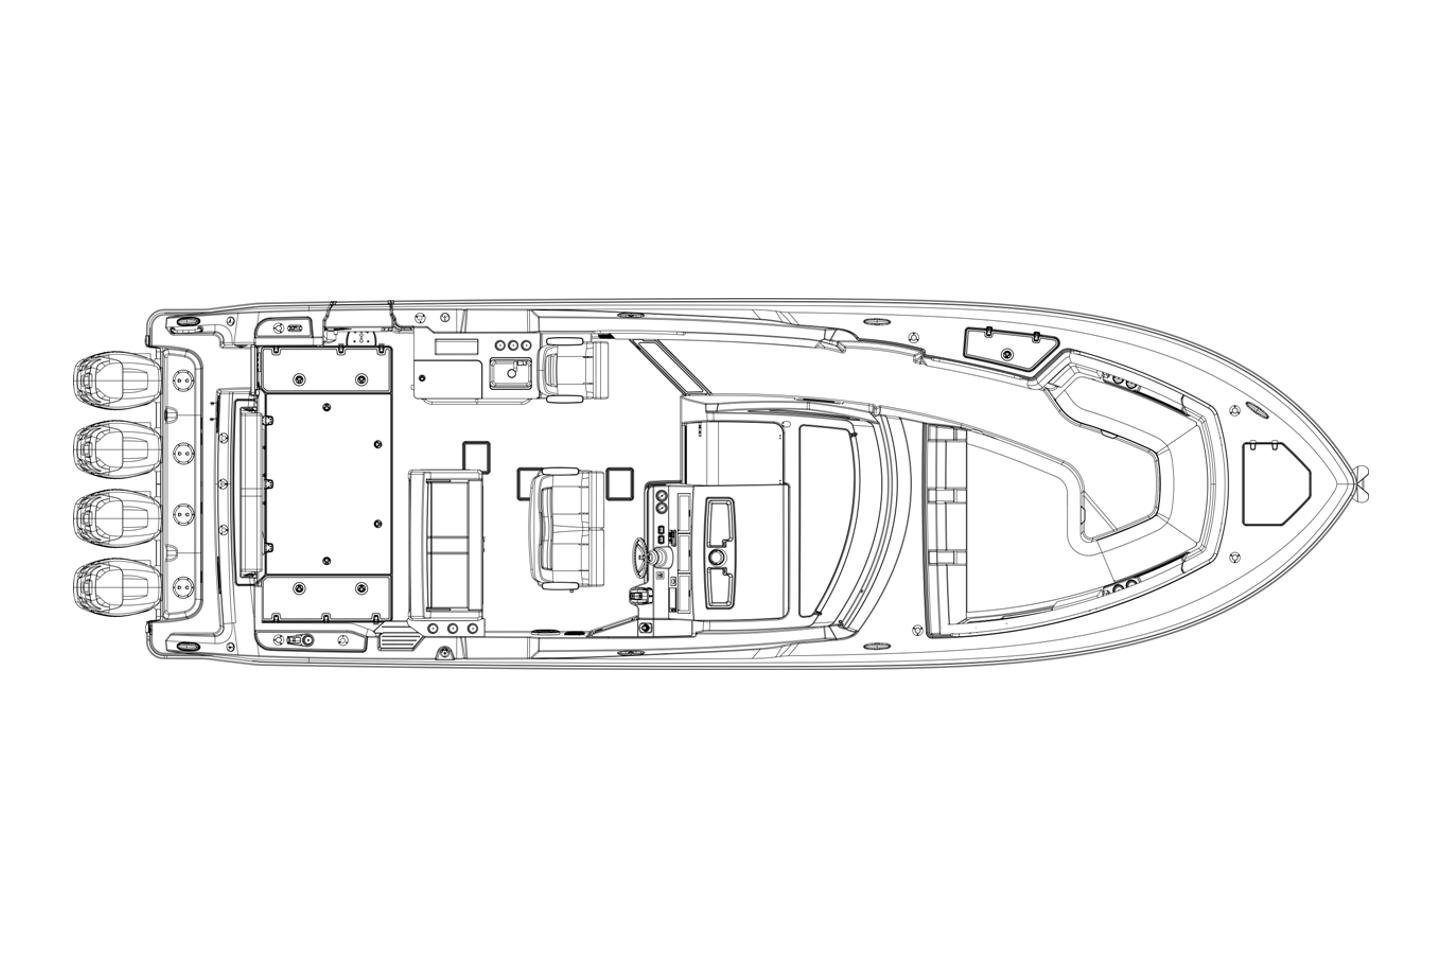 2021 Boston Whaler 380 Realm #BW1652A inventory image at Sun Country Coastal in Newport Beach